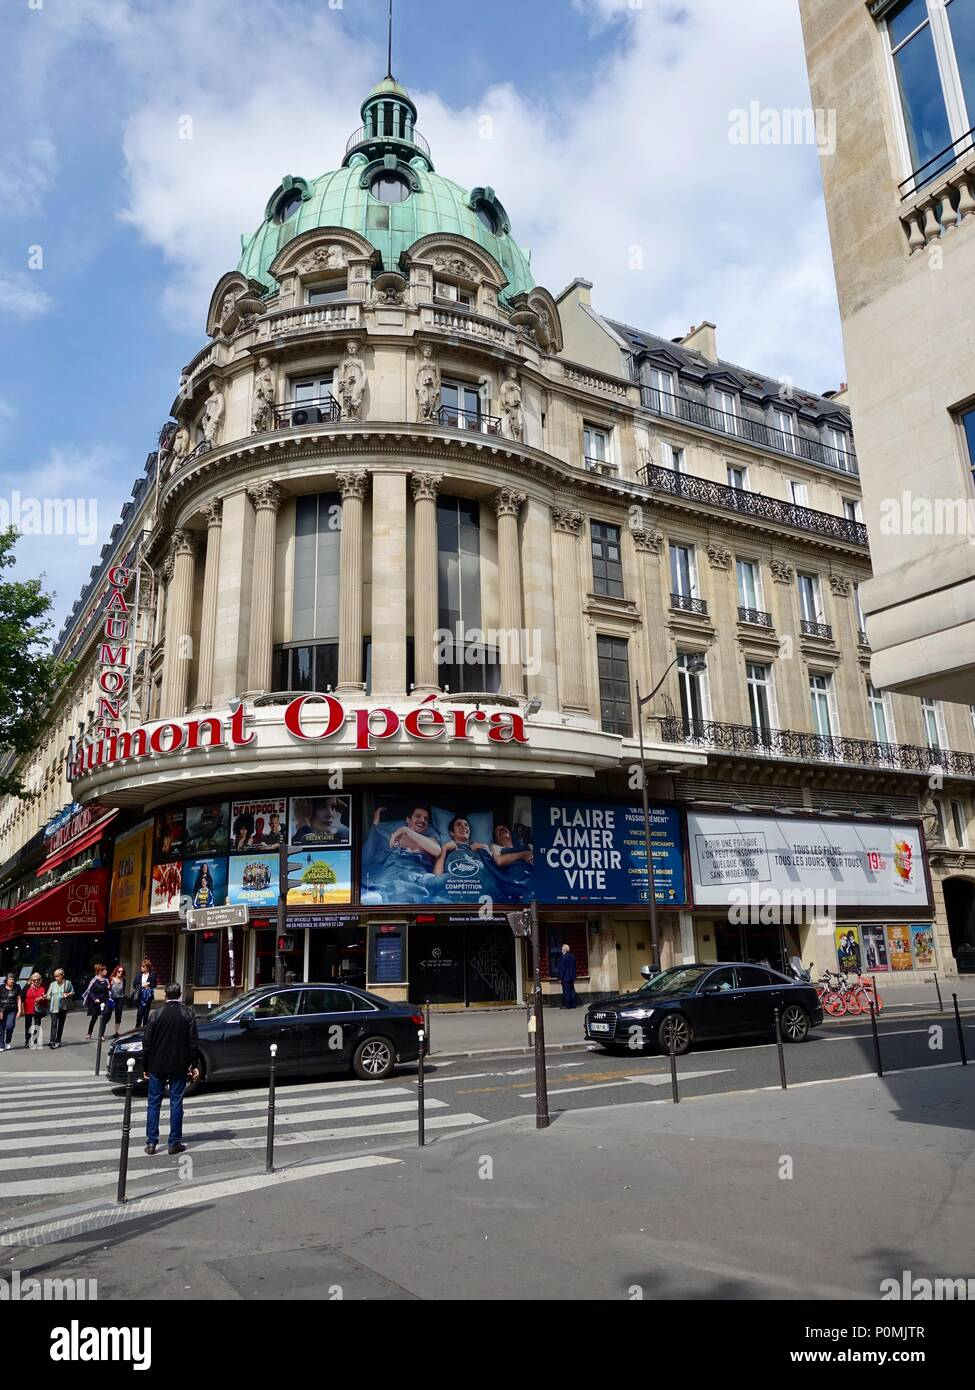 Gaumont Opéra cinema front facade, Paris, France Stock Photo - Alamy